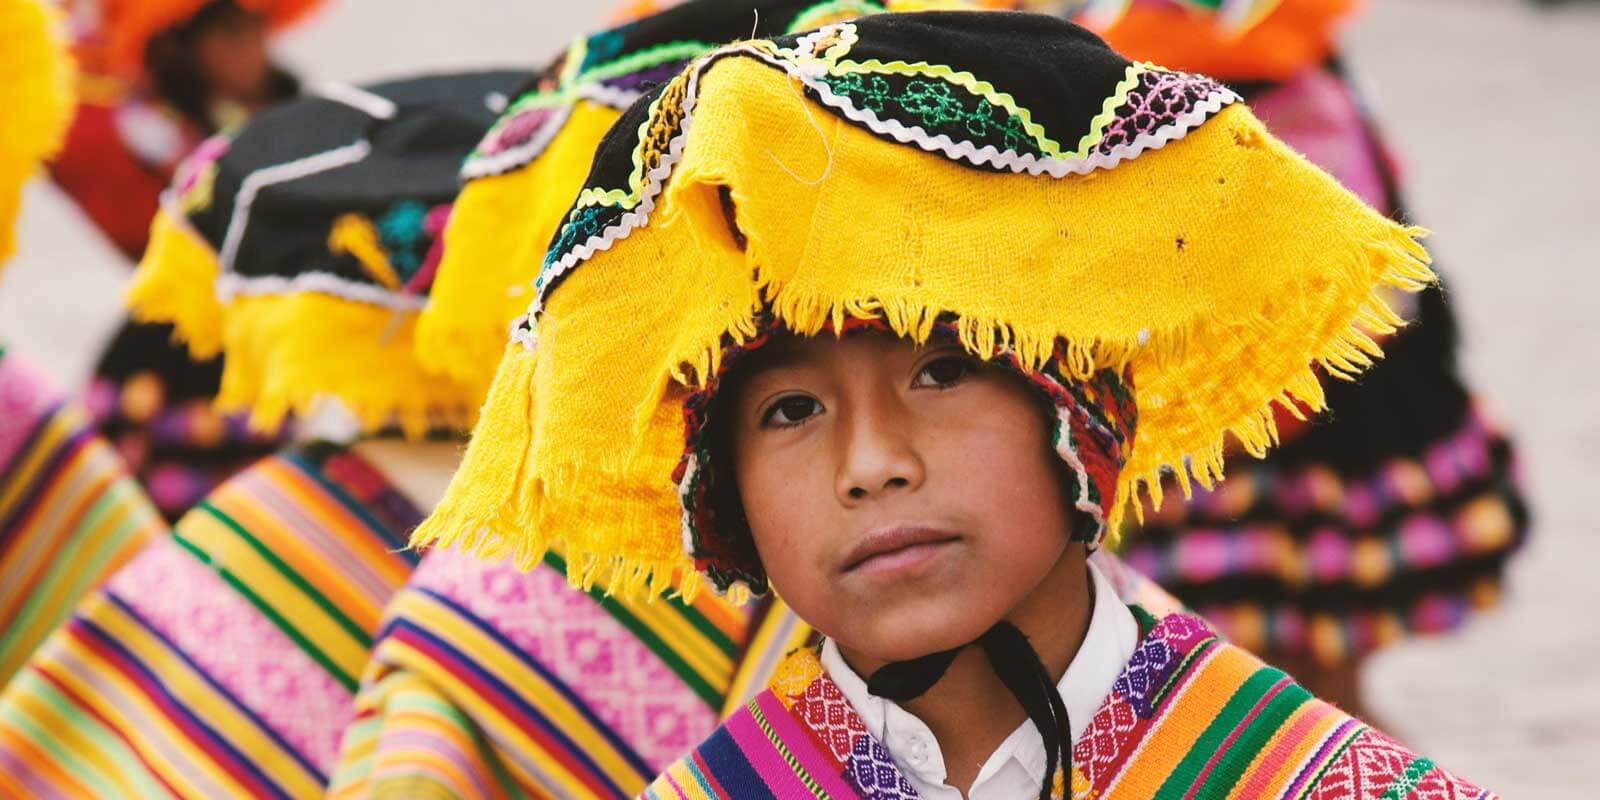 Closeup of a Peruvian child wearing colorful woven hat and clothing.